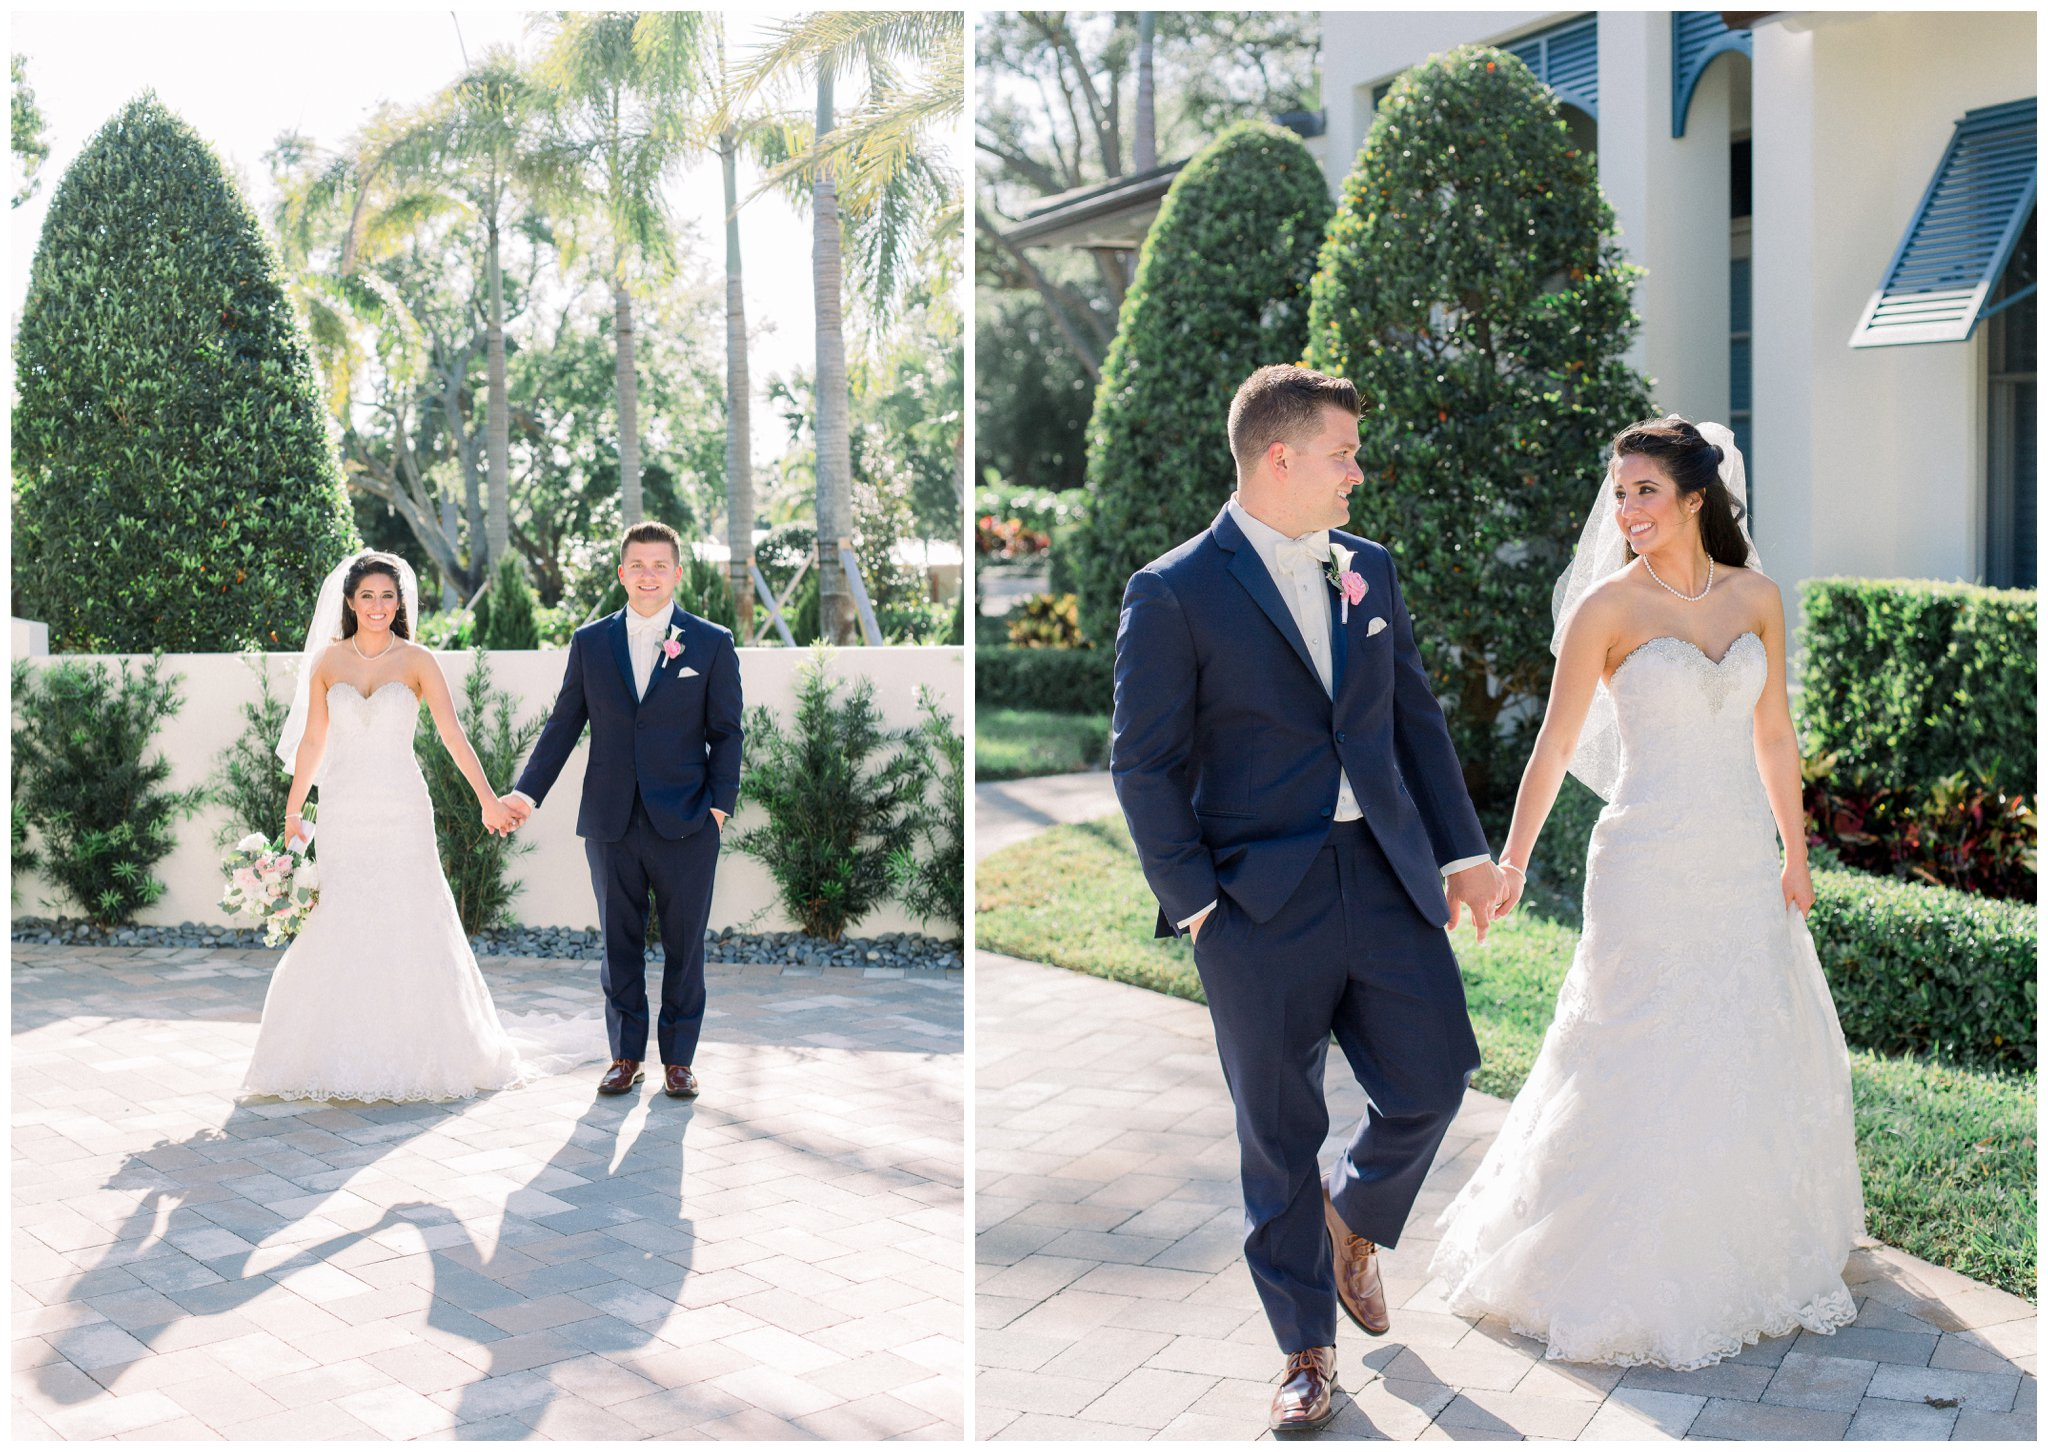 South Florida Wedding Photographer- Palm Beach Wedding Photographer- Jupiter Wedding Photographer- Florida Photographer- Willoughby Country Club Wedding- Sturat Florida Wedding- St Bernadette Port St Lucie Wedding_0027.jpg